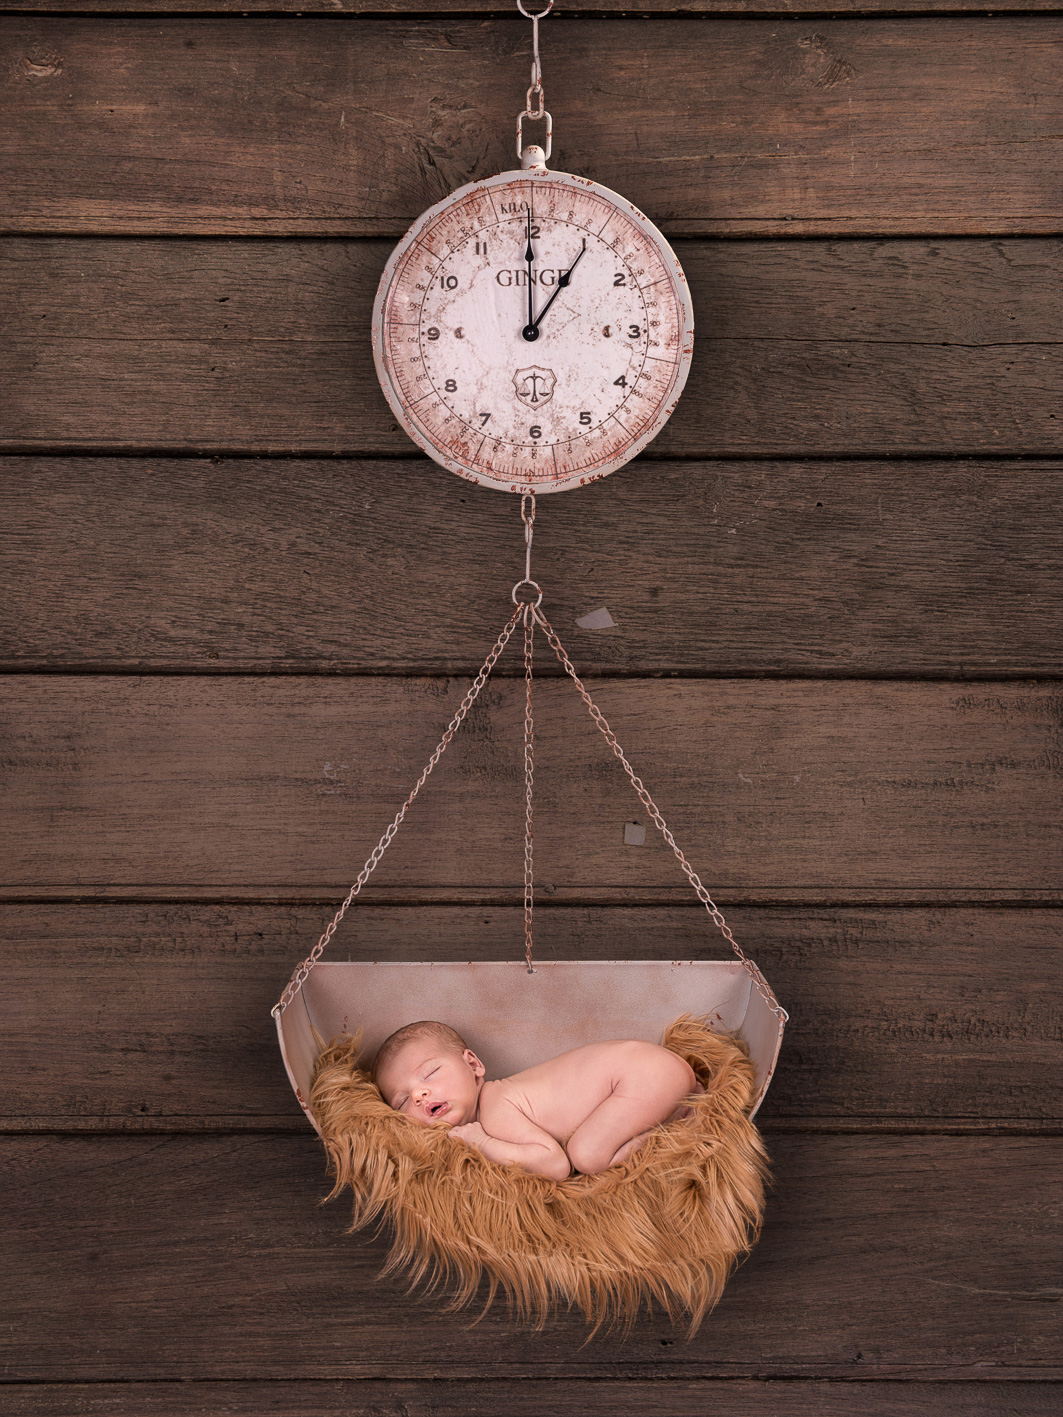 newborn-shoot-tagg-photography-1